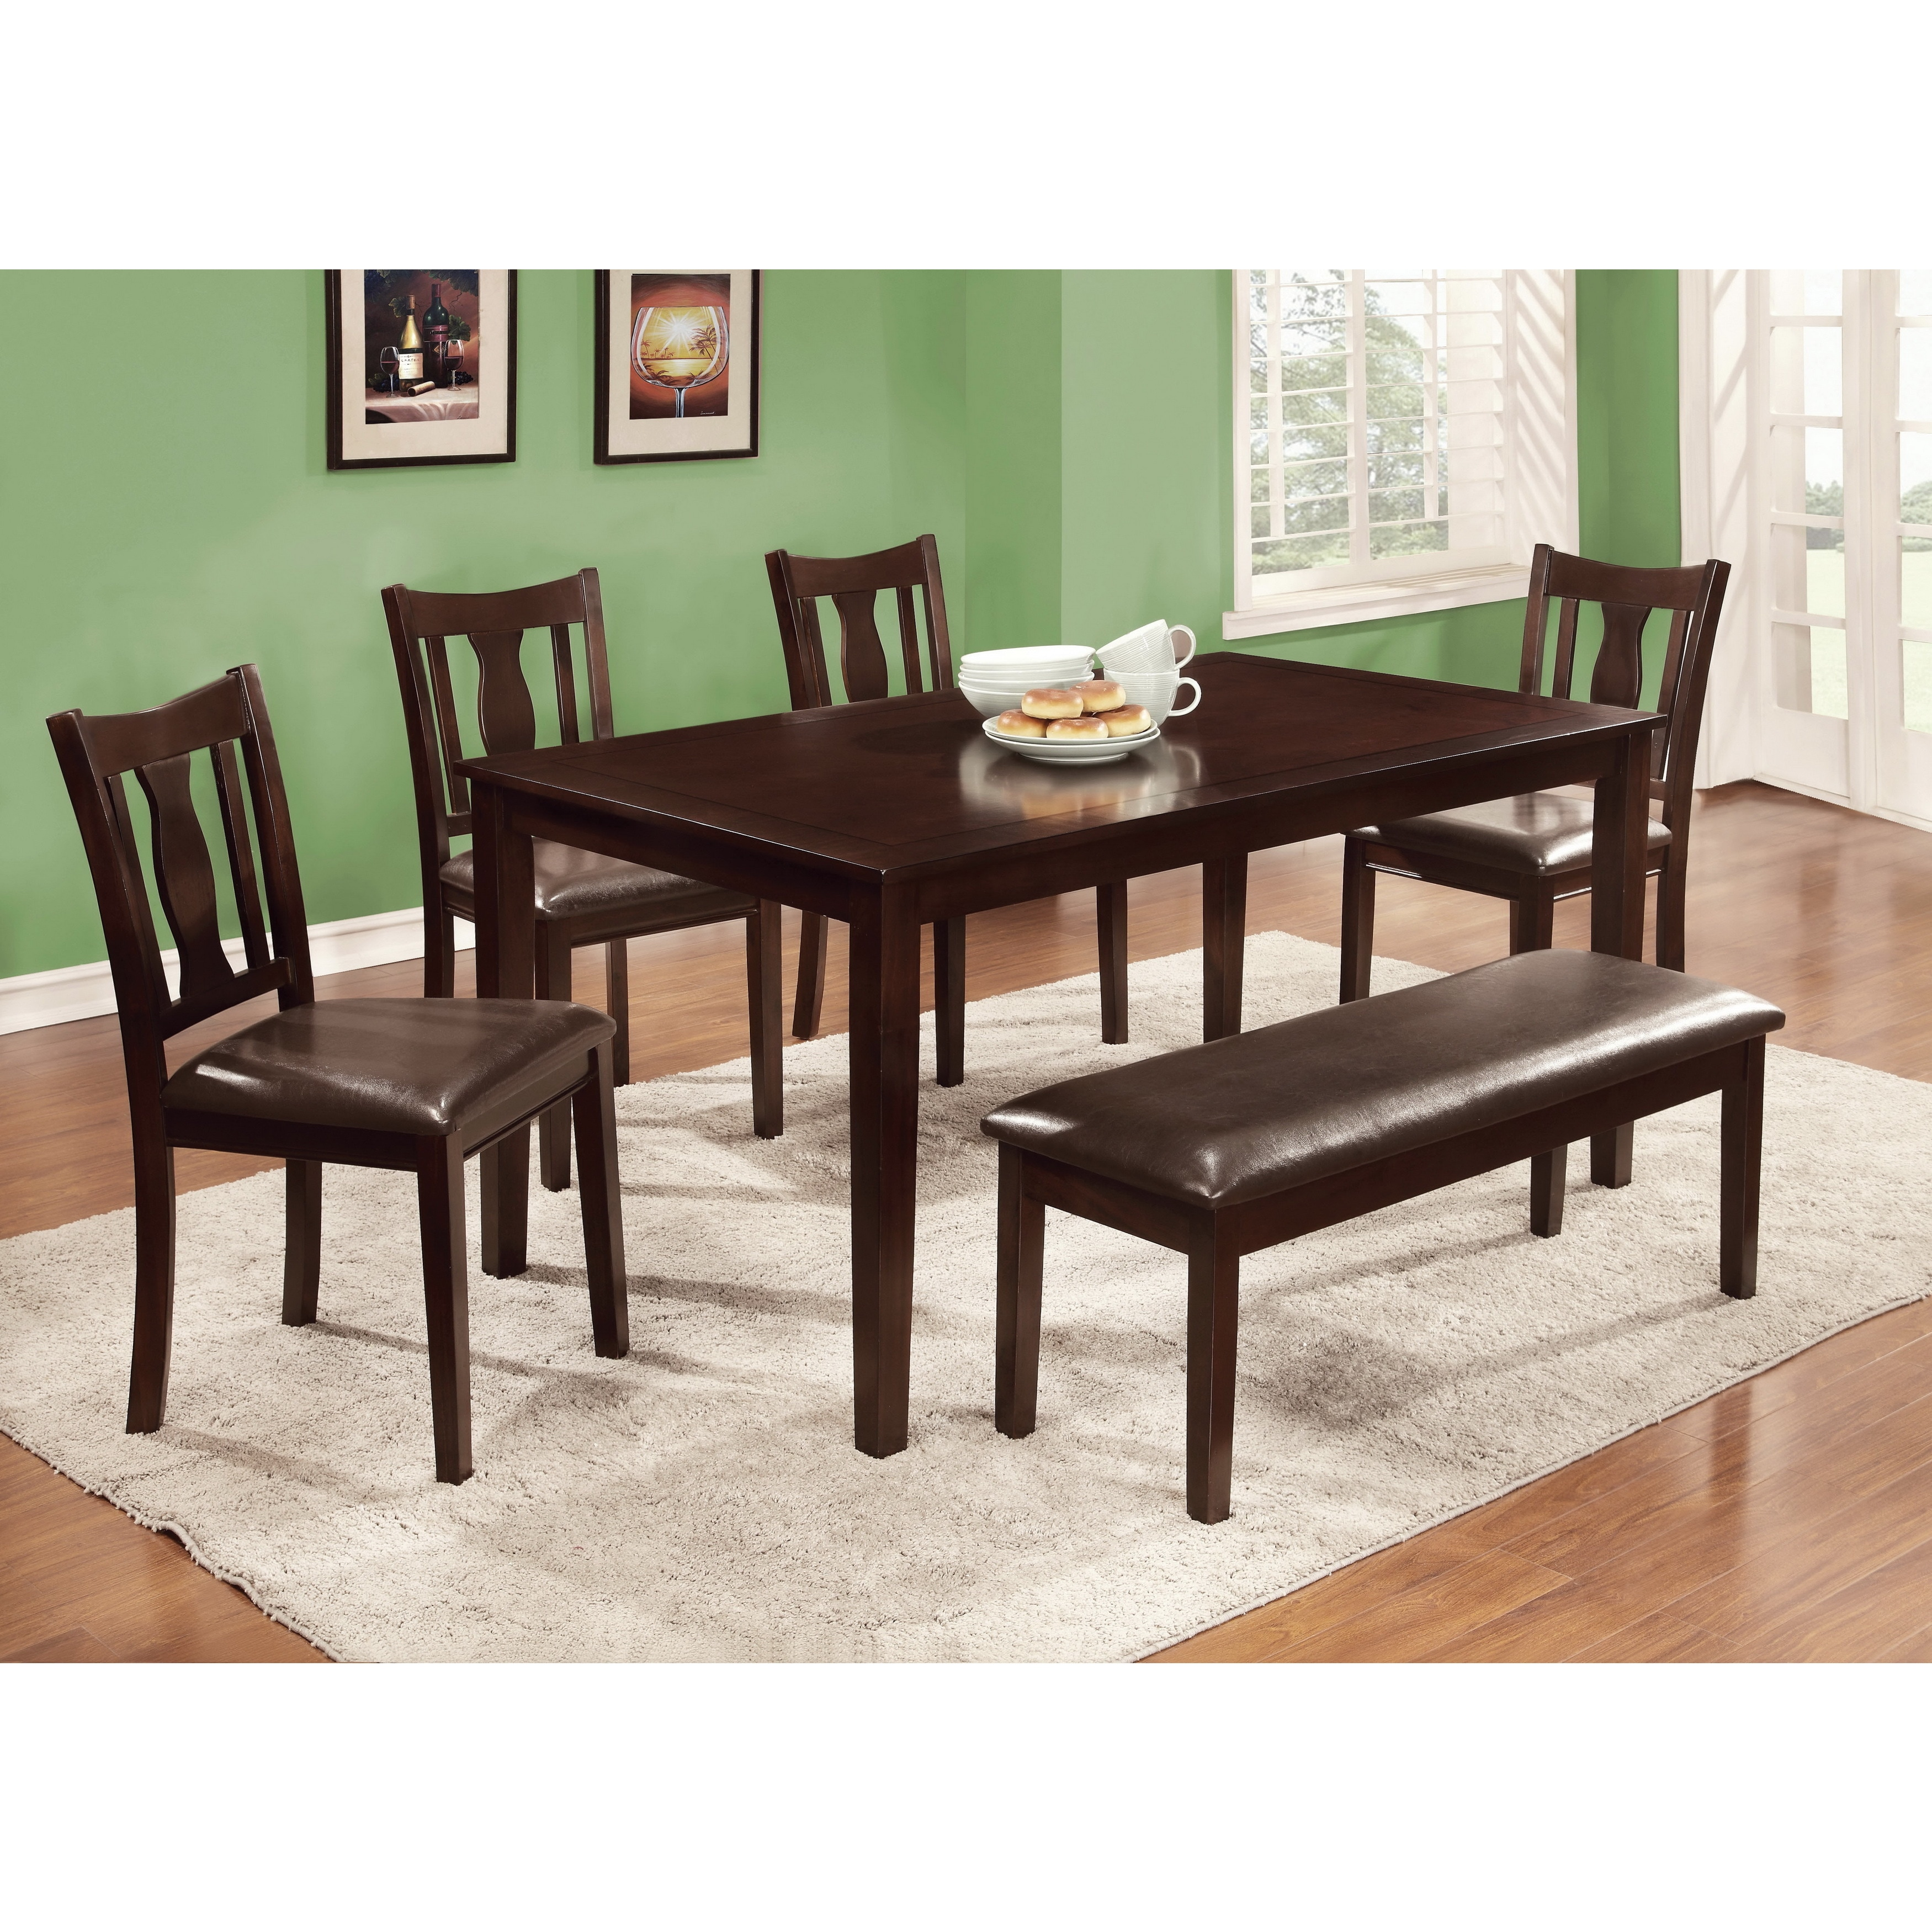 Furniture of America Urban Lee 6-piece Espresso Dining Se...